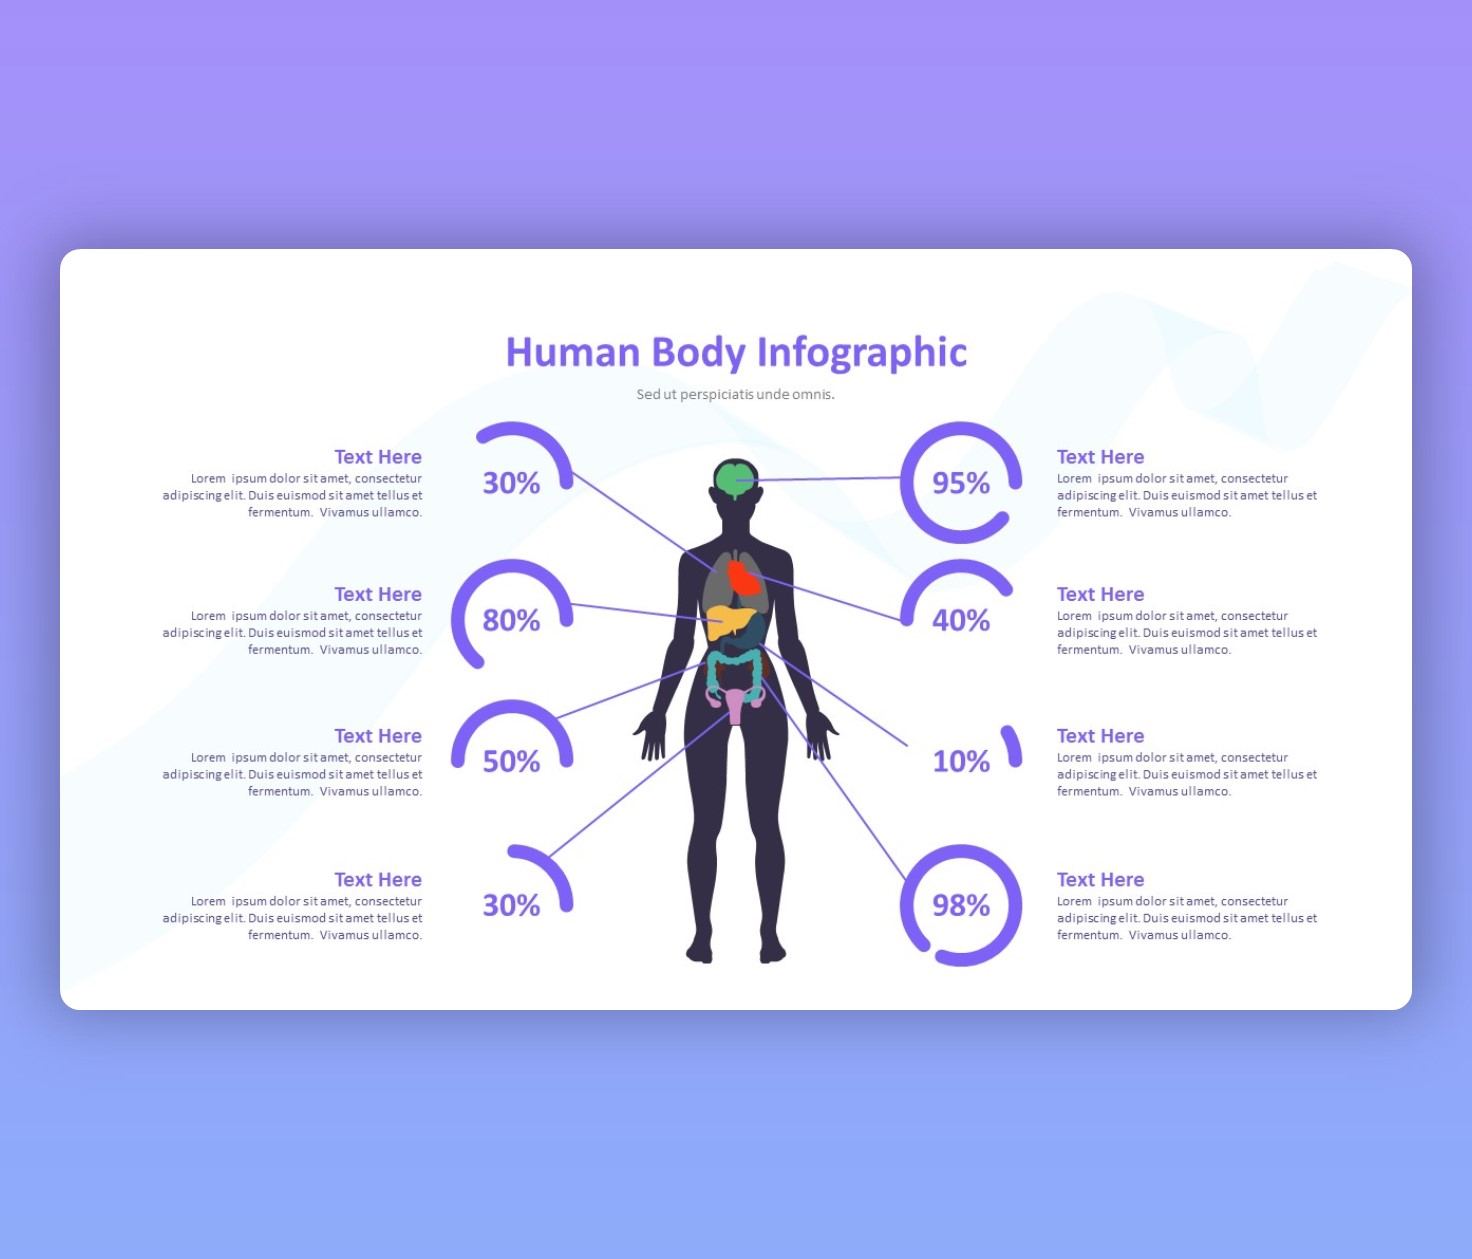 Human Body Infographic